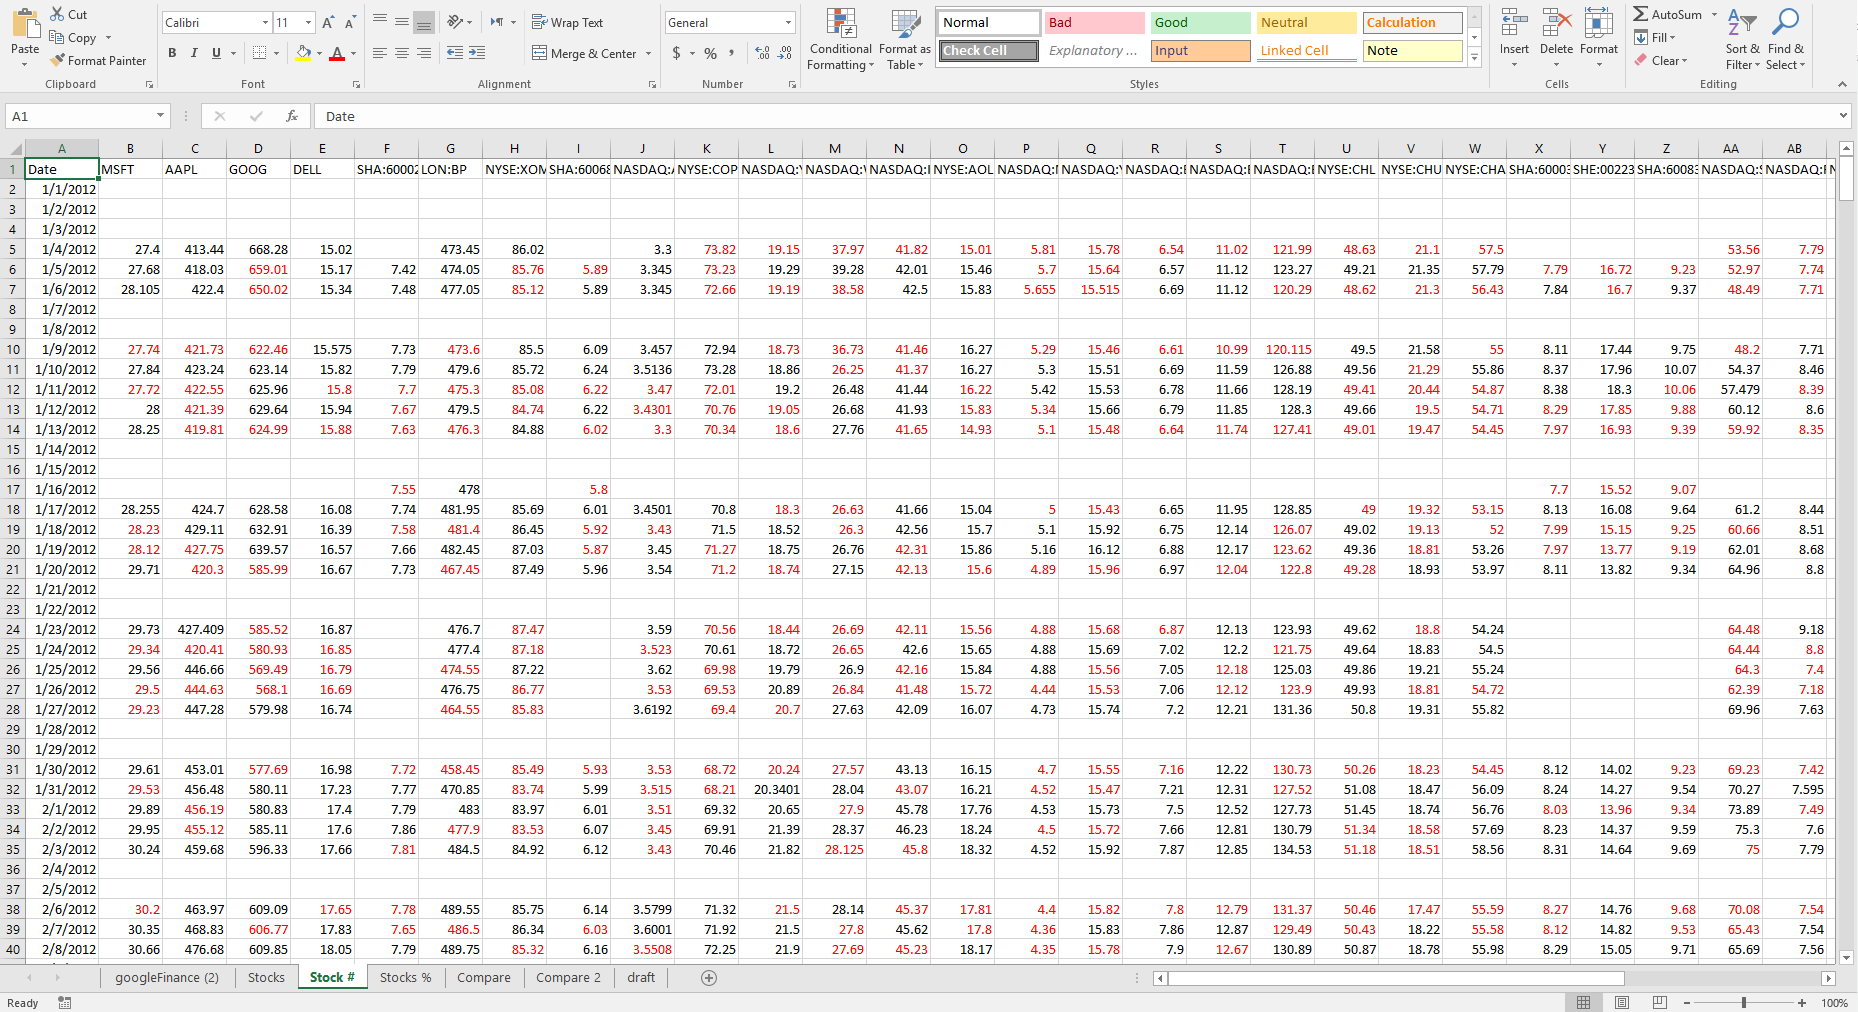 Comparing Stocks in Microsoft Excel